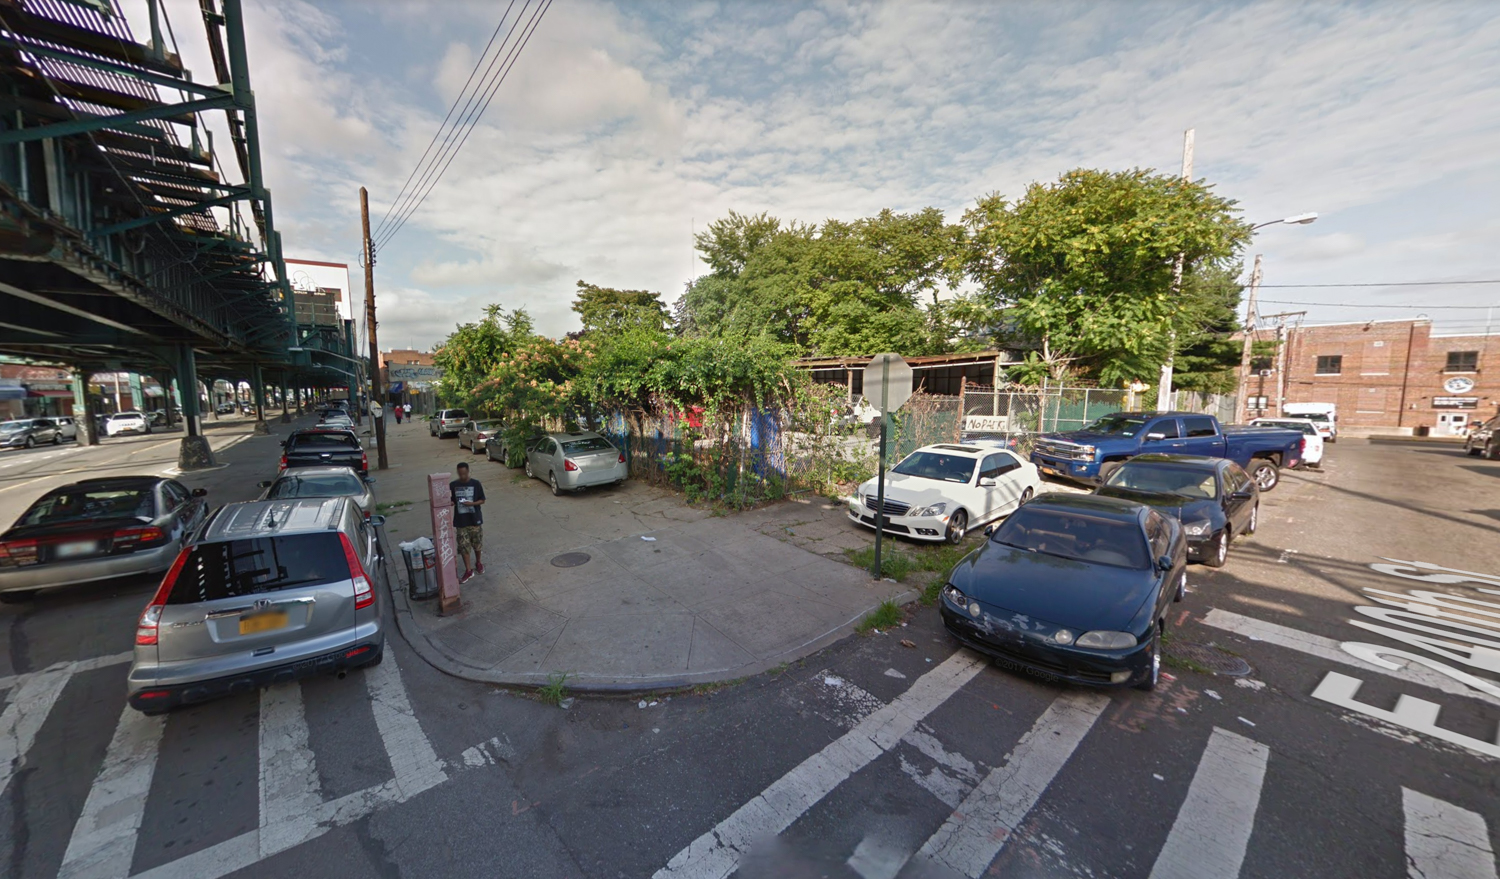 701 East 240th Street, via Google Maps